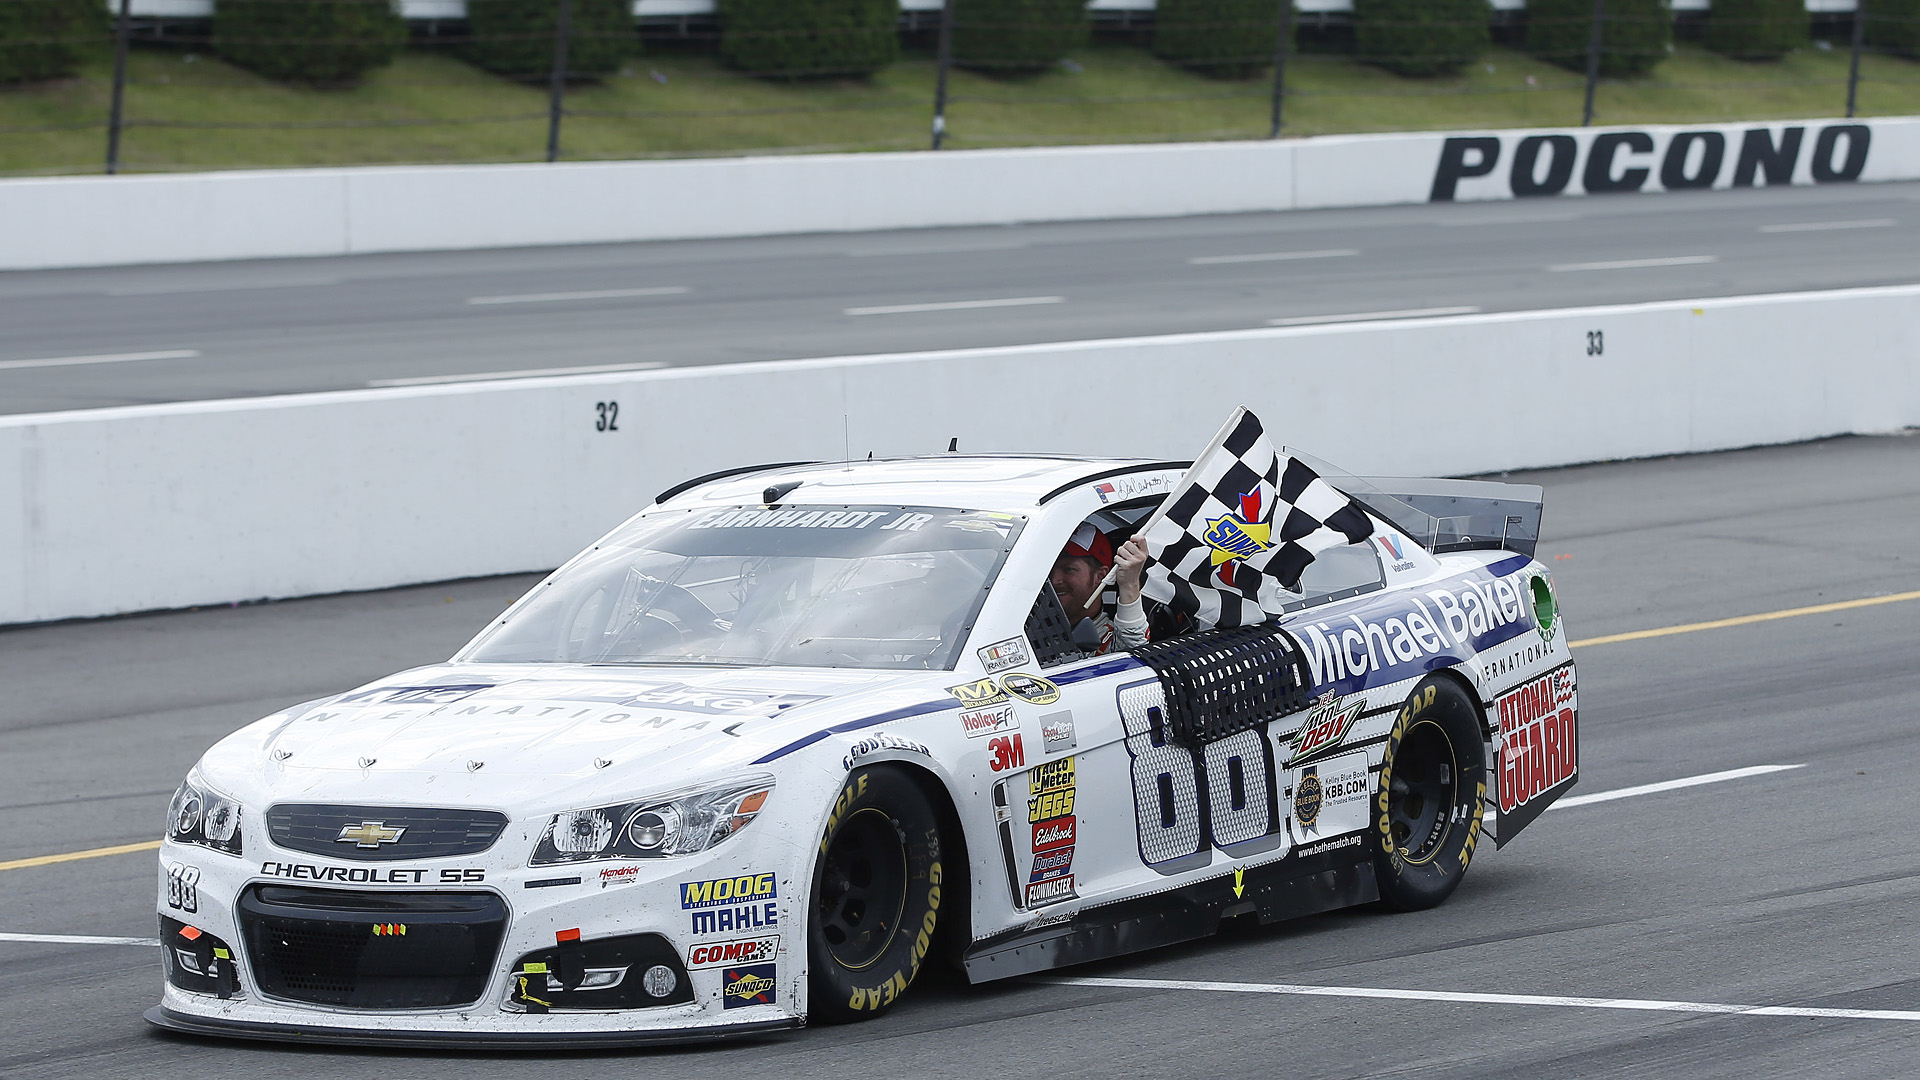 NASCAR at Pocono qualifying: Time, TV channel, online streaming